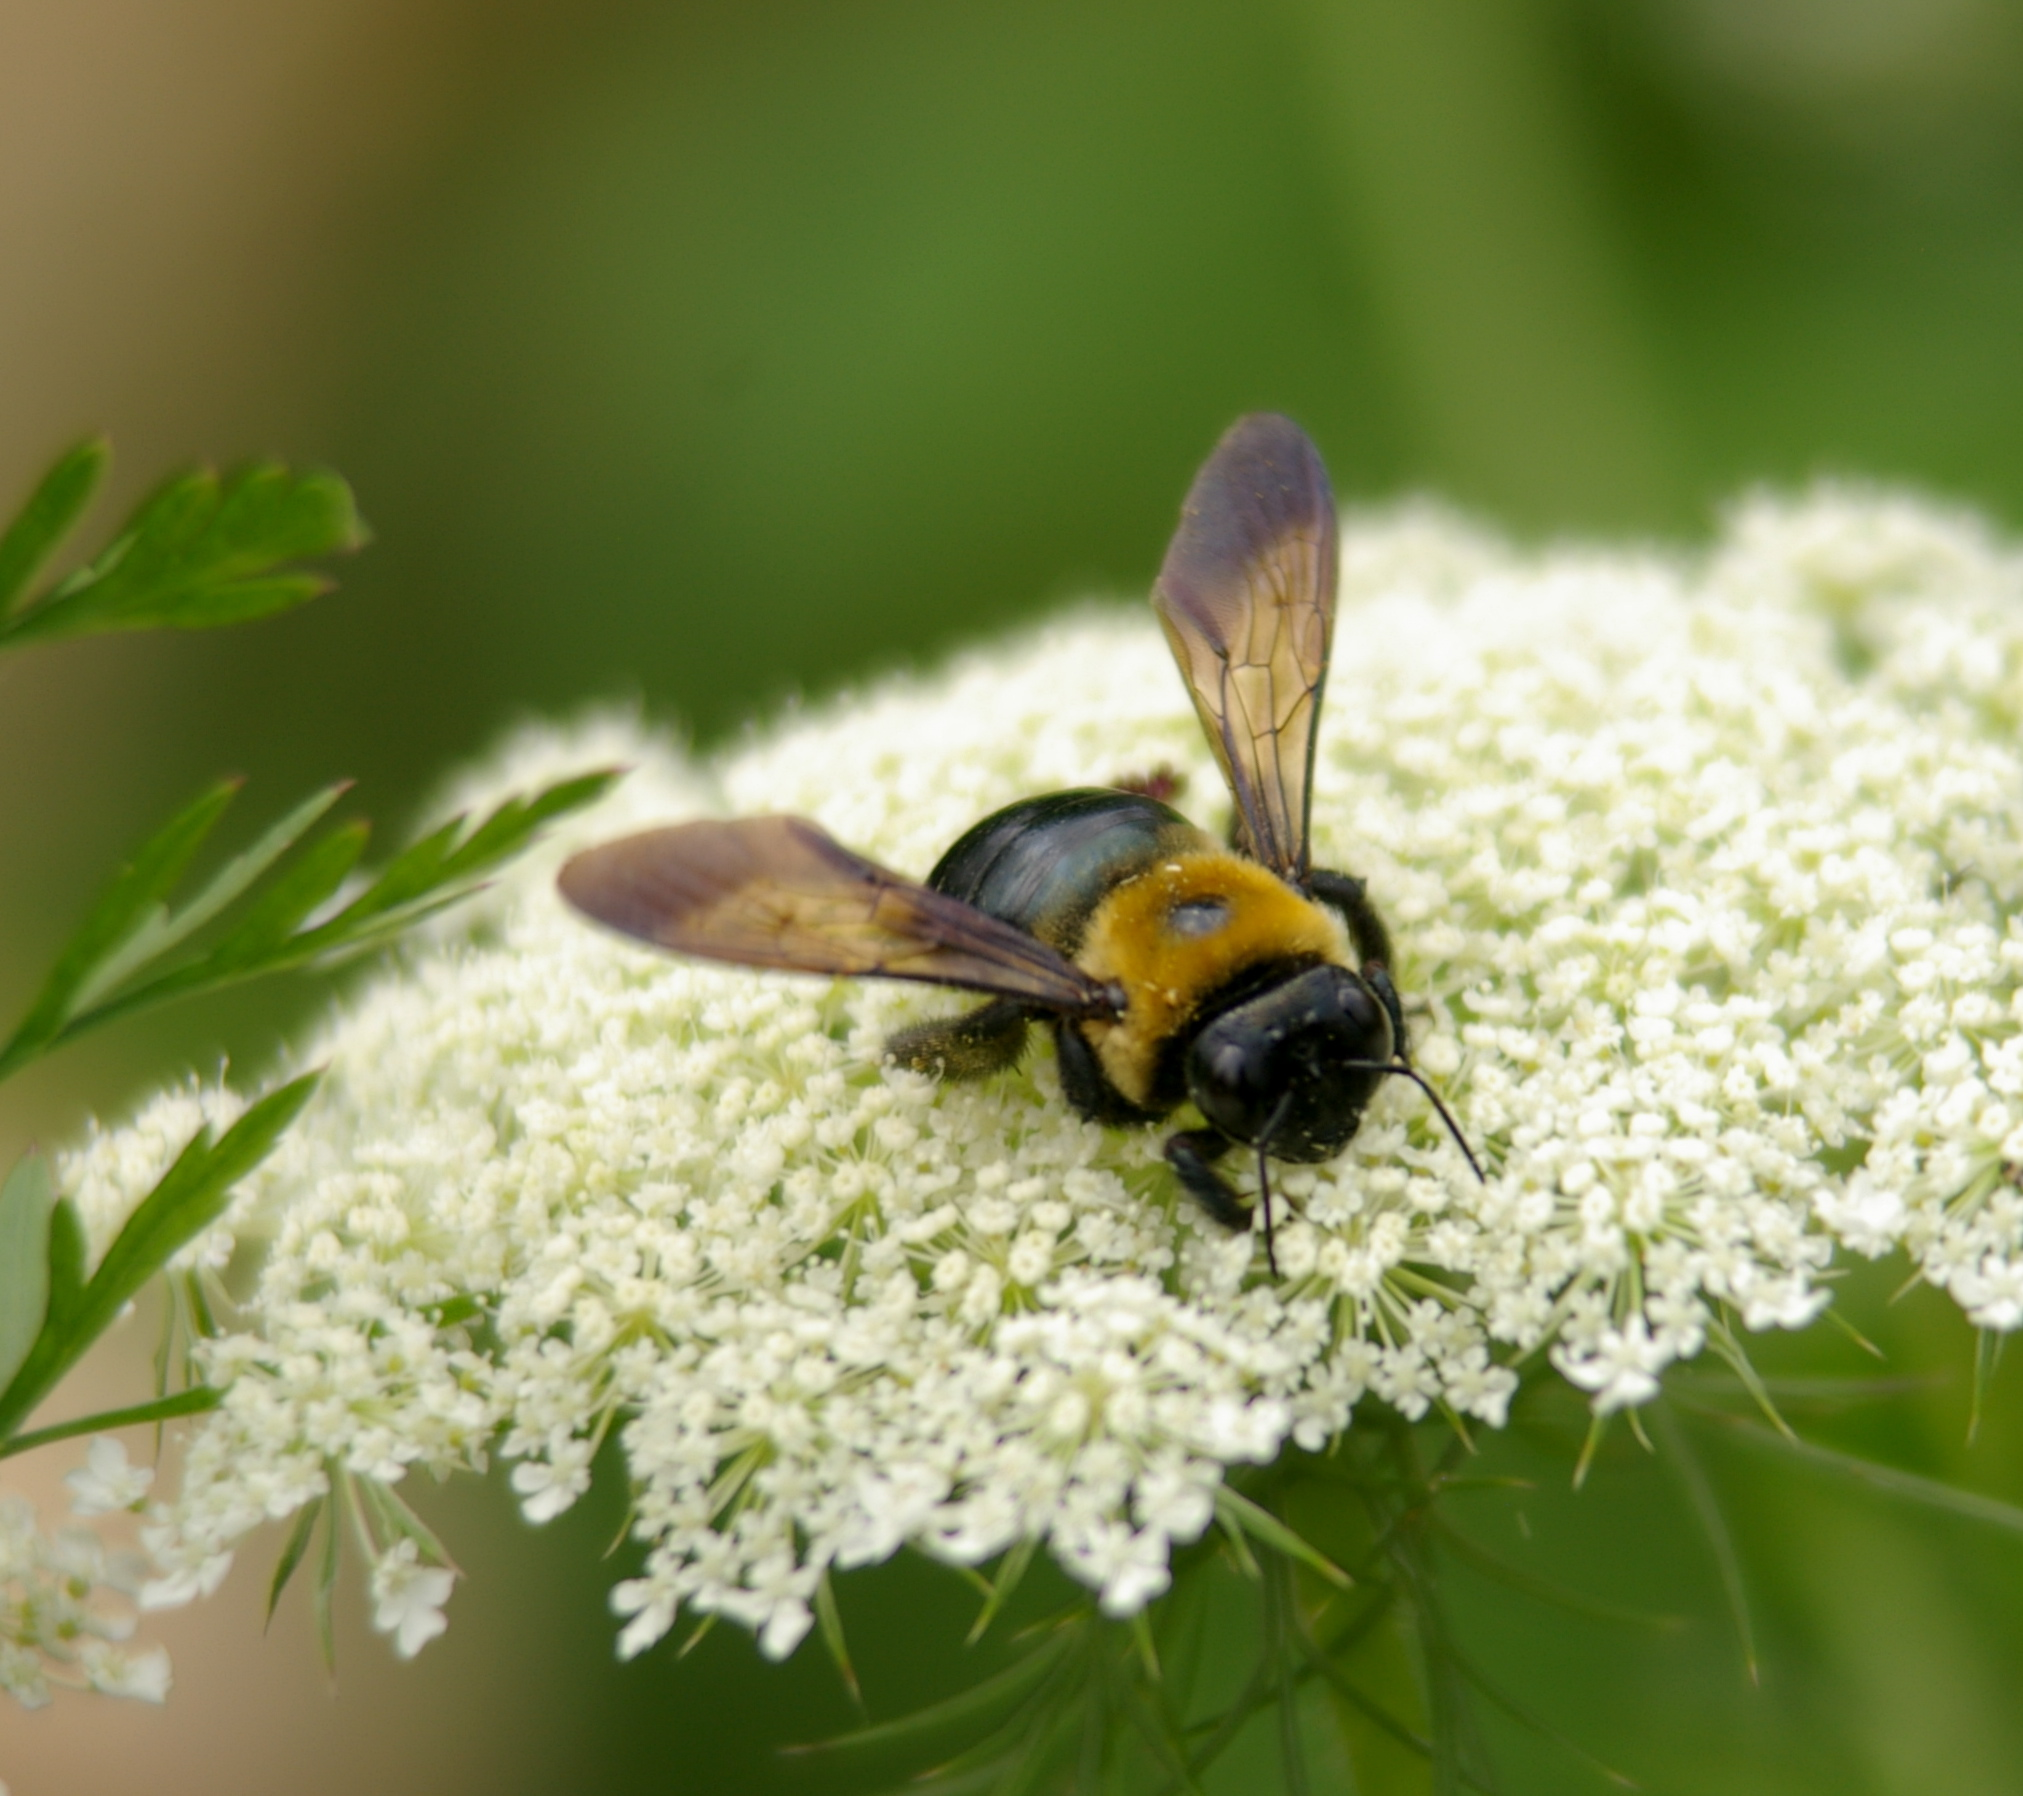 A large bee with a black head and abdomen, and a gold, furry thorax nectaring on Queen Anne's Lace